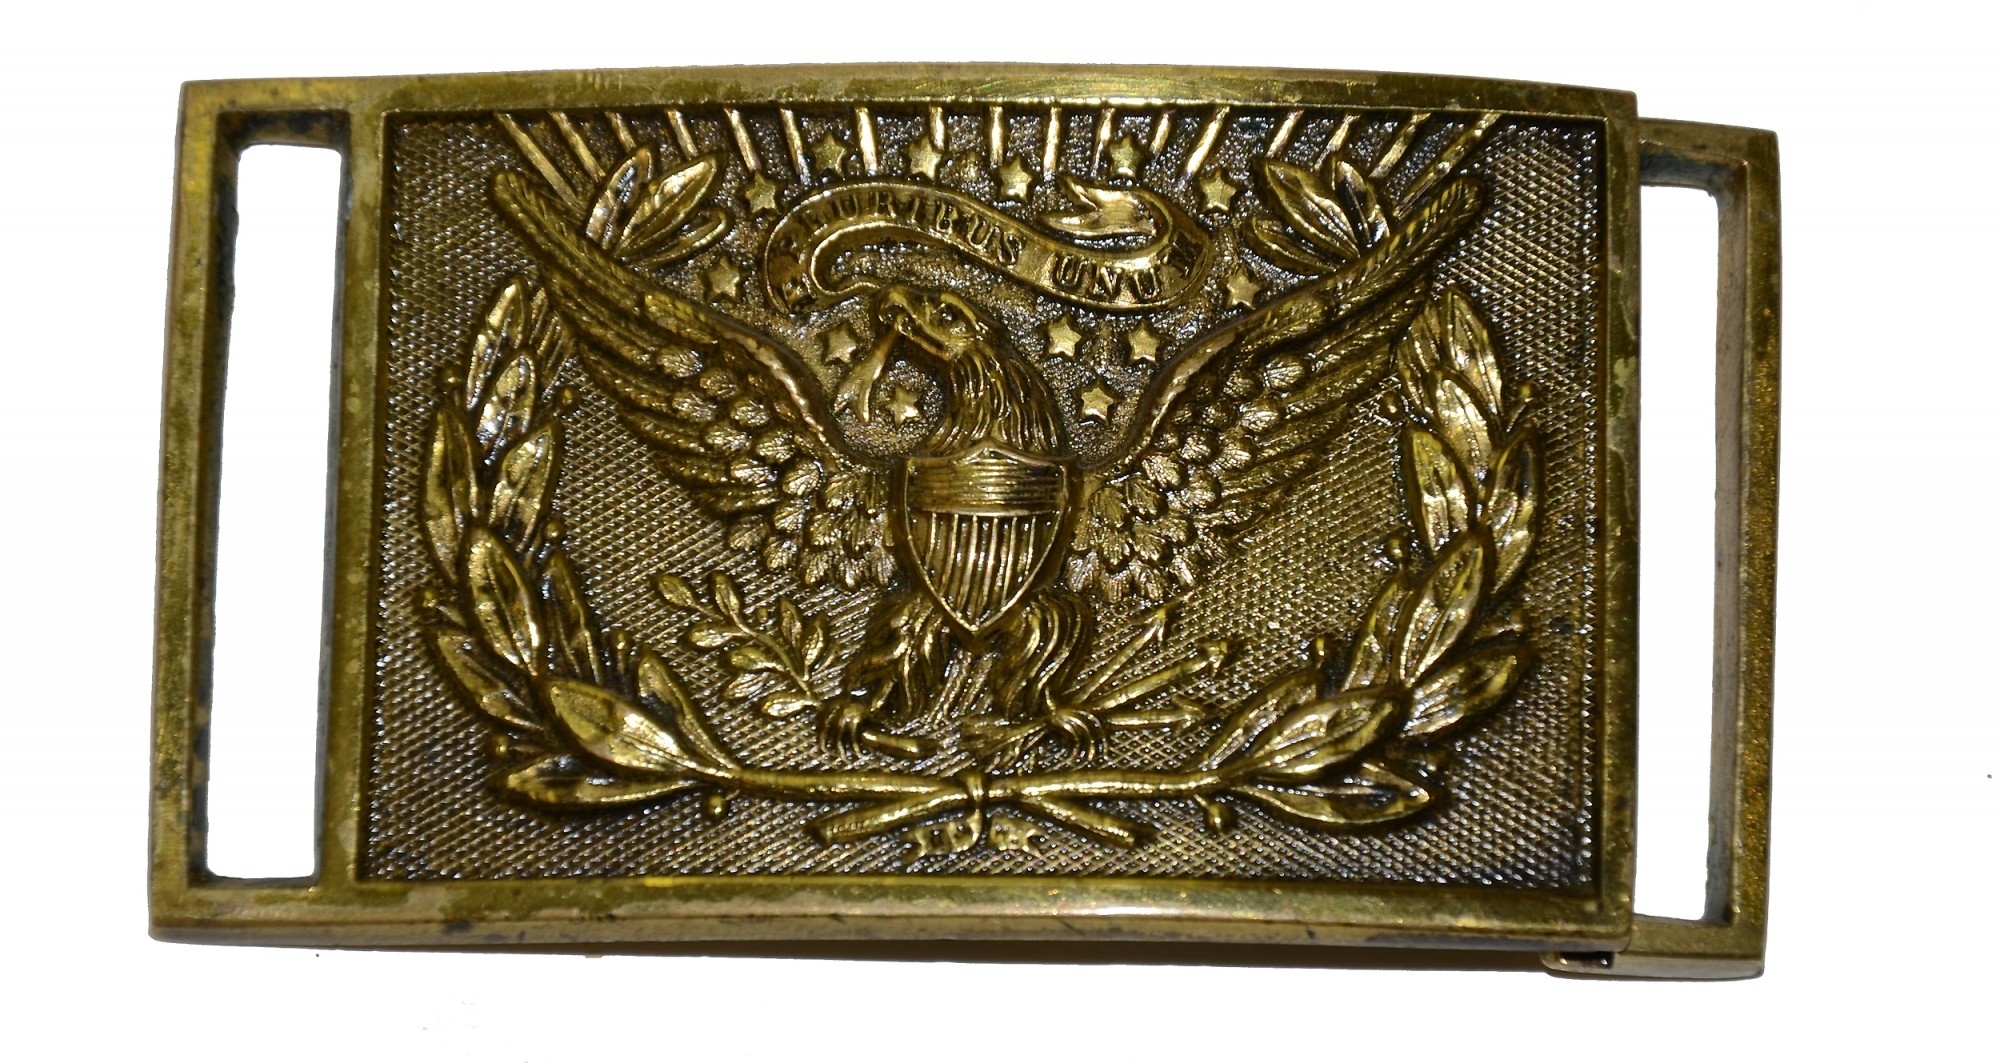 EXTRA FINE QUALITY AND CONDITION MAKER MARKED 1851 PATTERN RECTANGULAR OFFICER'S BELT BUCKLE, C. 1861-65